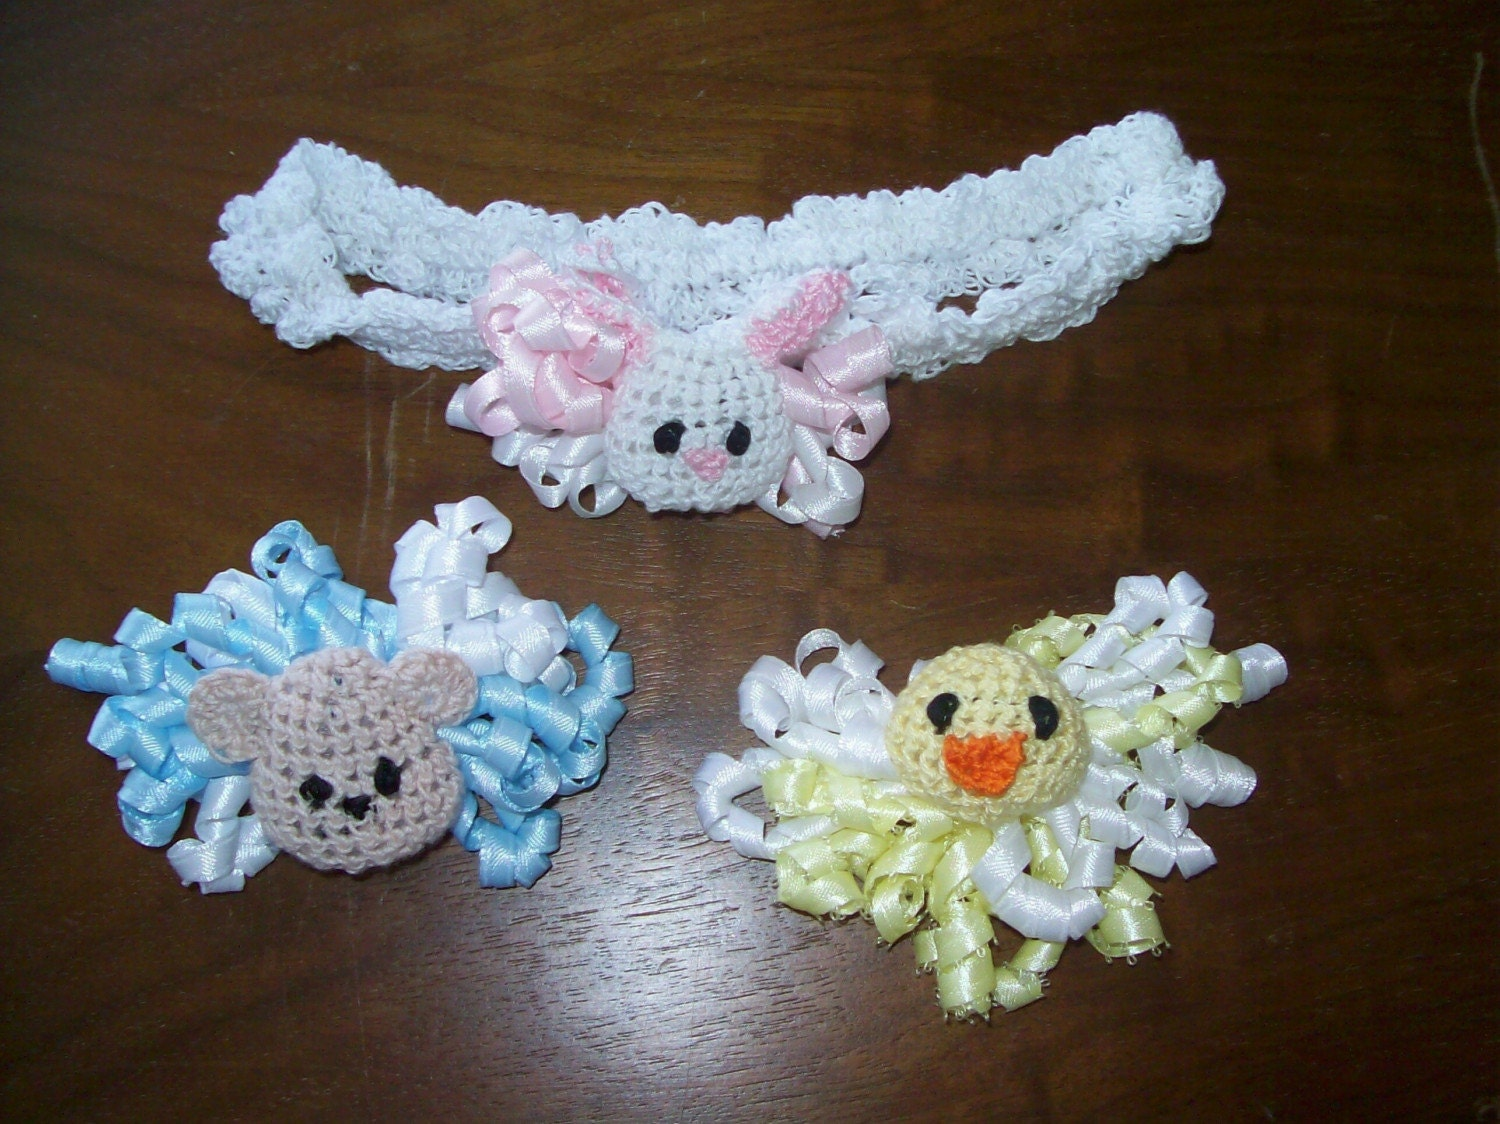 Free Crochet Patterns Baby Outfits : BABY ONESIE CROCHET PATTERN Patterns